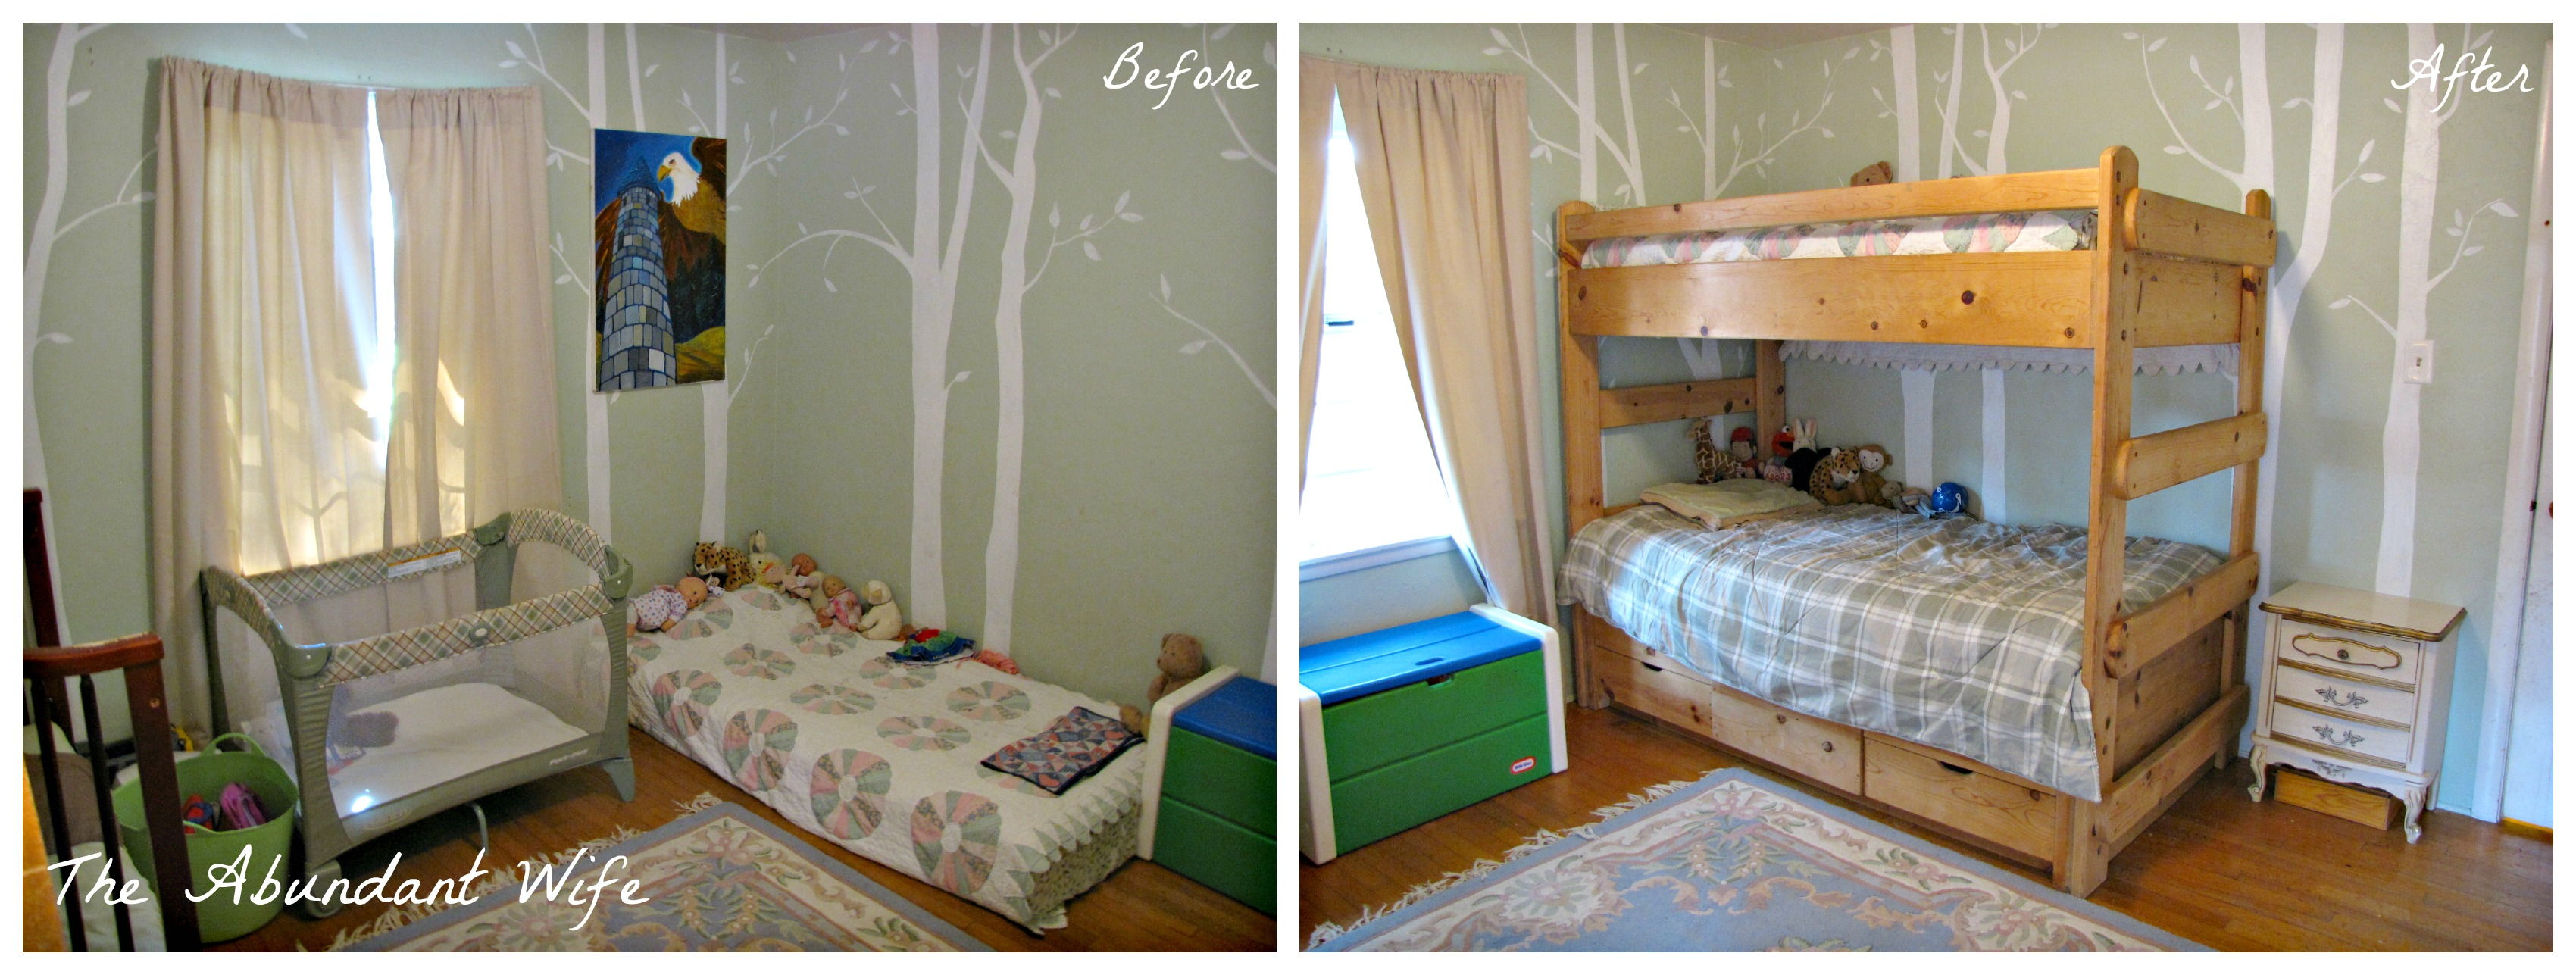 Marvelous  Kids in a Bedroom Before u After New Bunk Beds